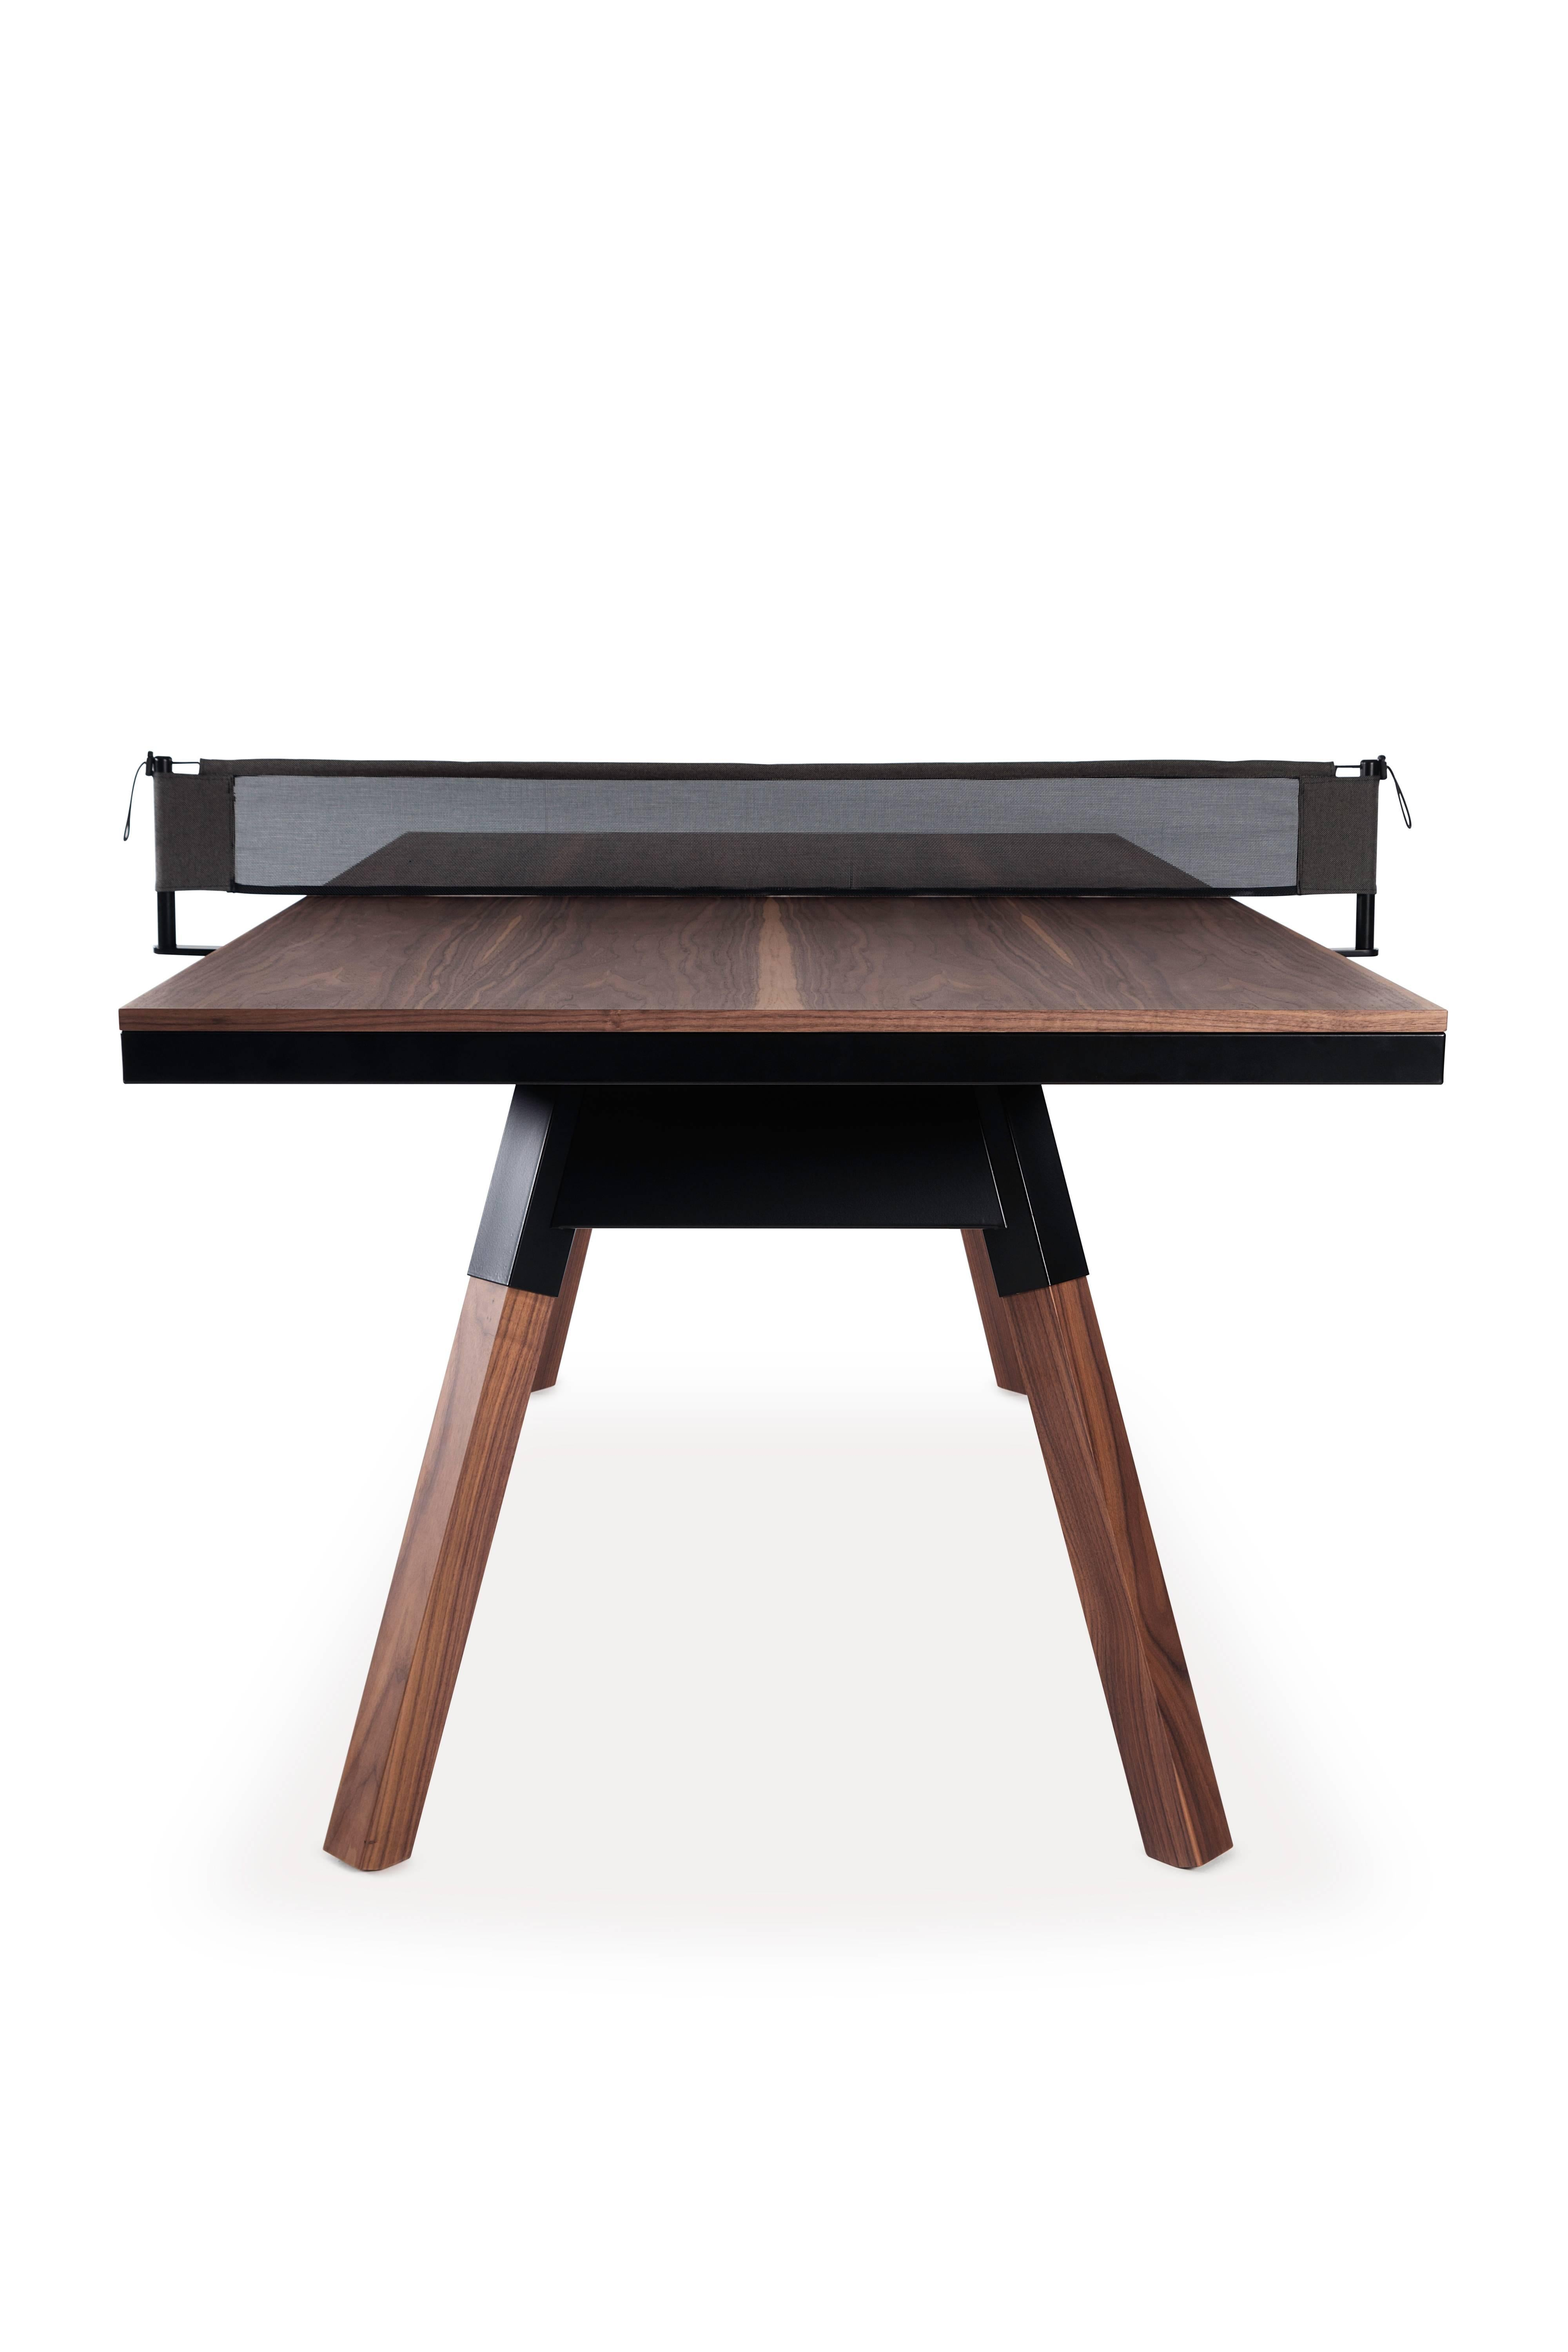 You U0026 Me Wooden Top 180 Ping Pong Table In Walnut And Black By RS Barcelona